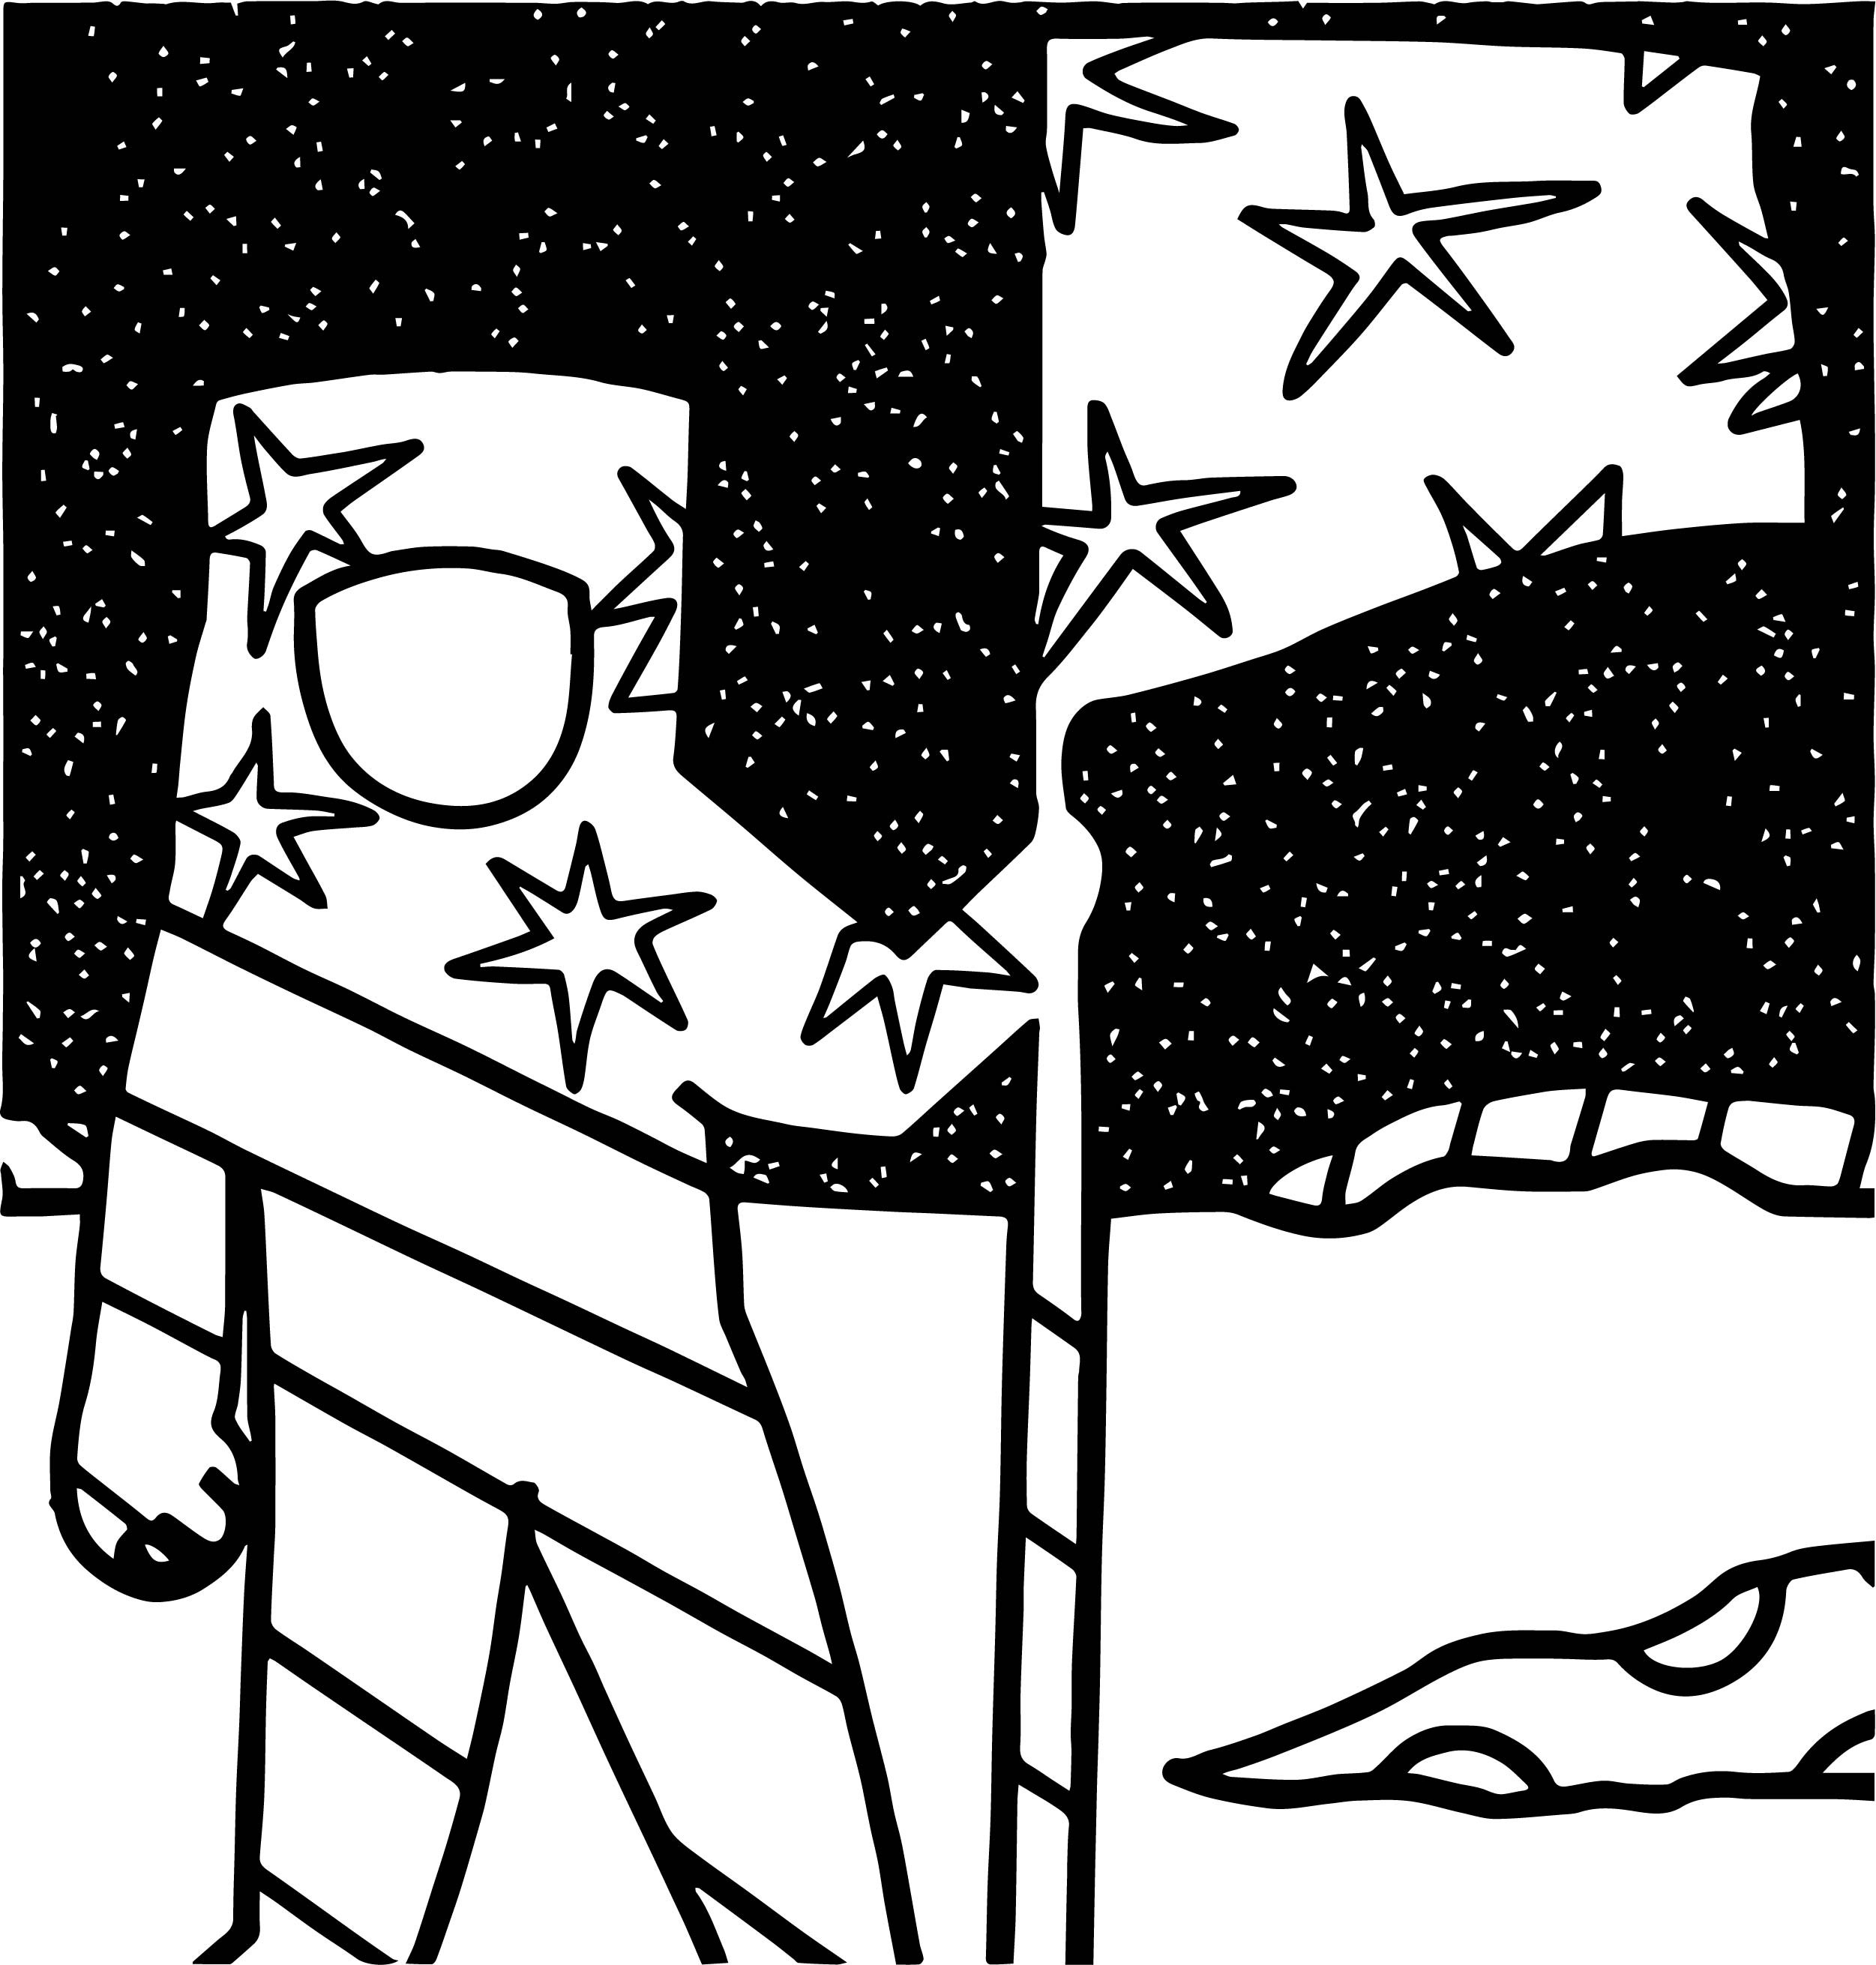 2502x2621 Astronaut On The Moon Coloring Pages With Us Flag For Kids Lovely